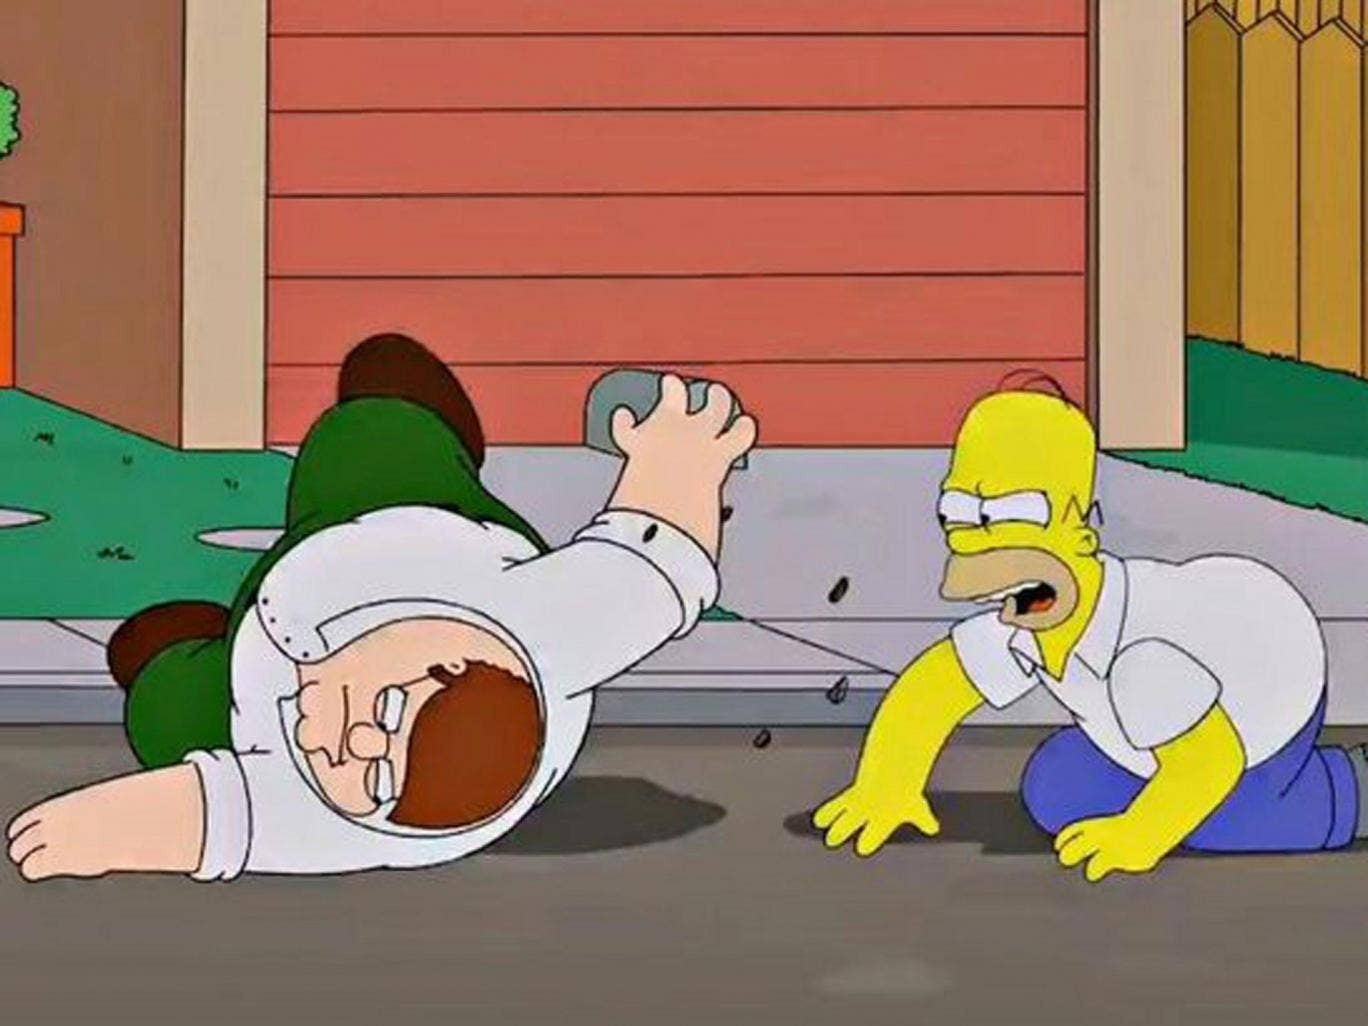 Tangled up: the Simpsons/Family Guy crossover episode